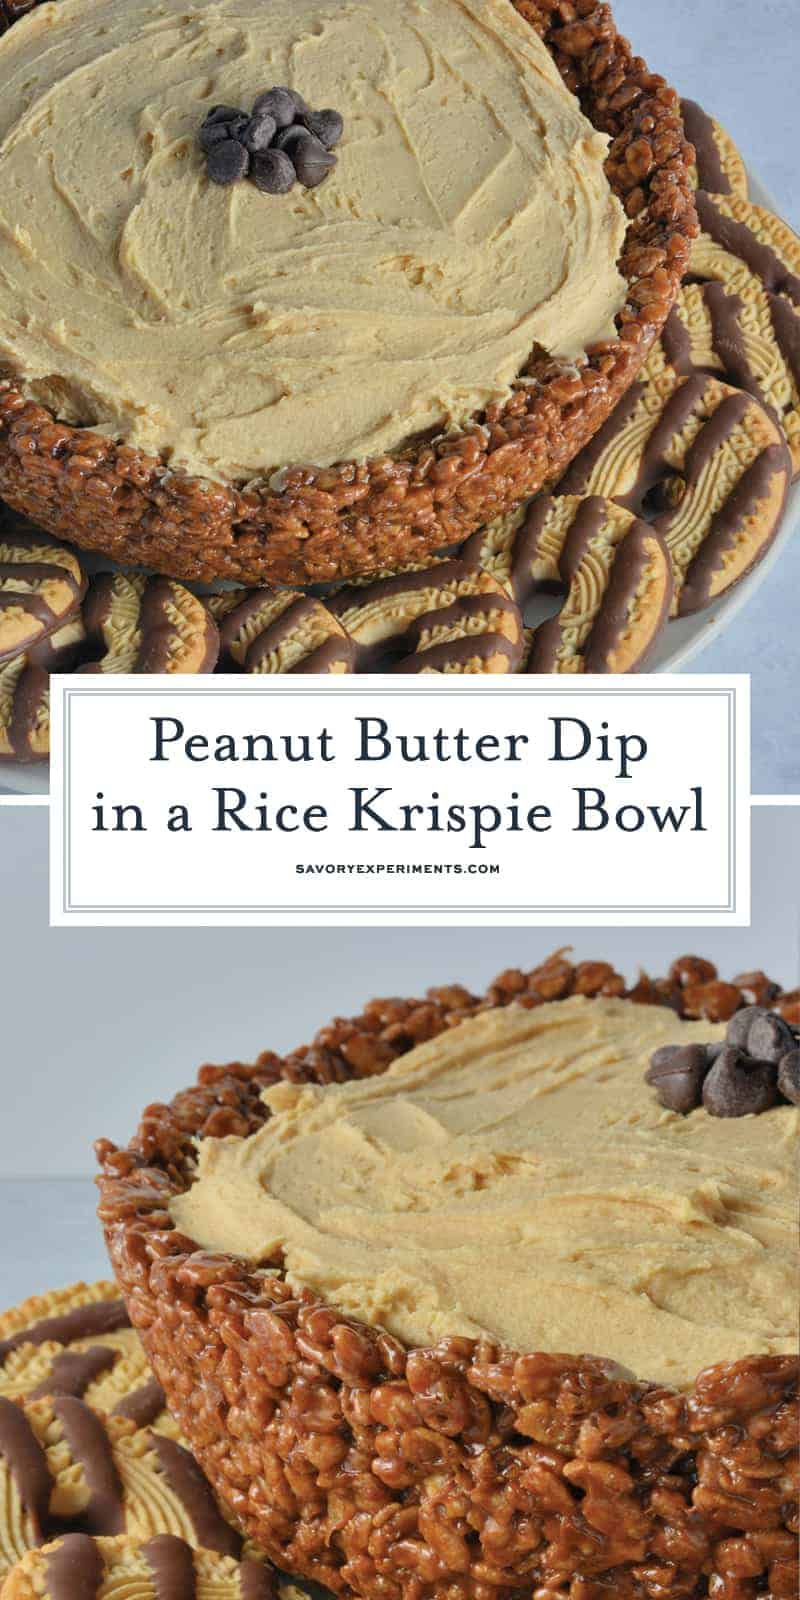 Creamy whipped peanut butter in an edible chocolate laced Rice Krispie treat bowl. The best no-bake peanut butter dessert!#peanutbutterdessert www.savoryexperiments.com